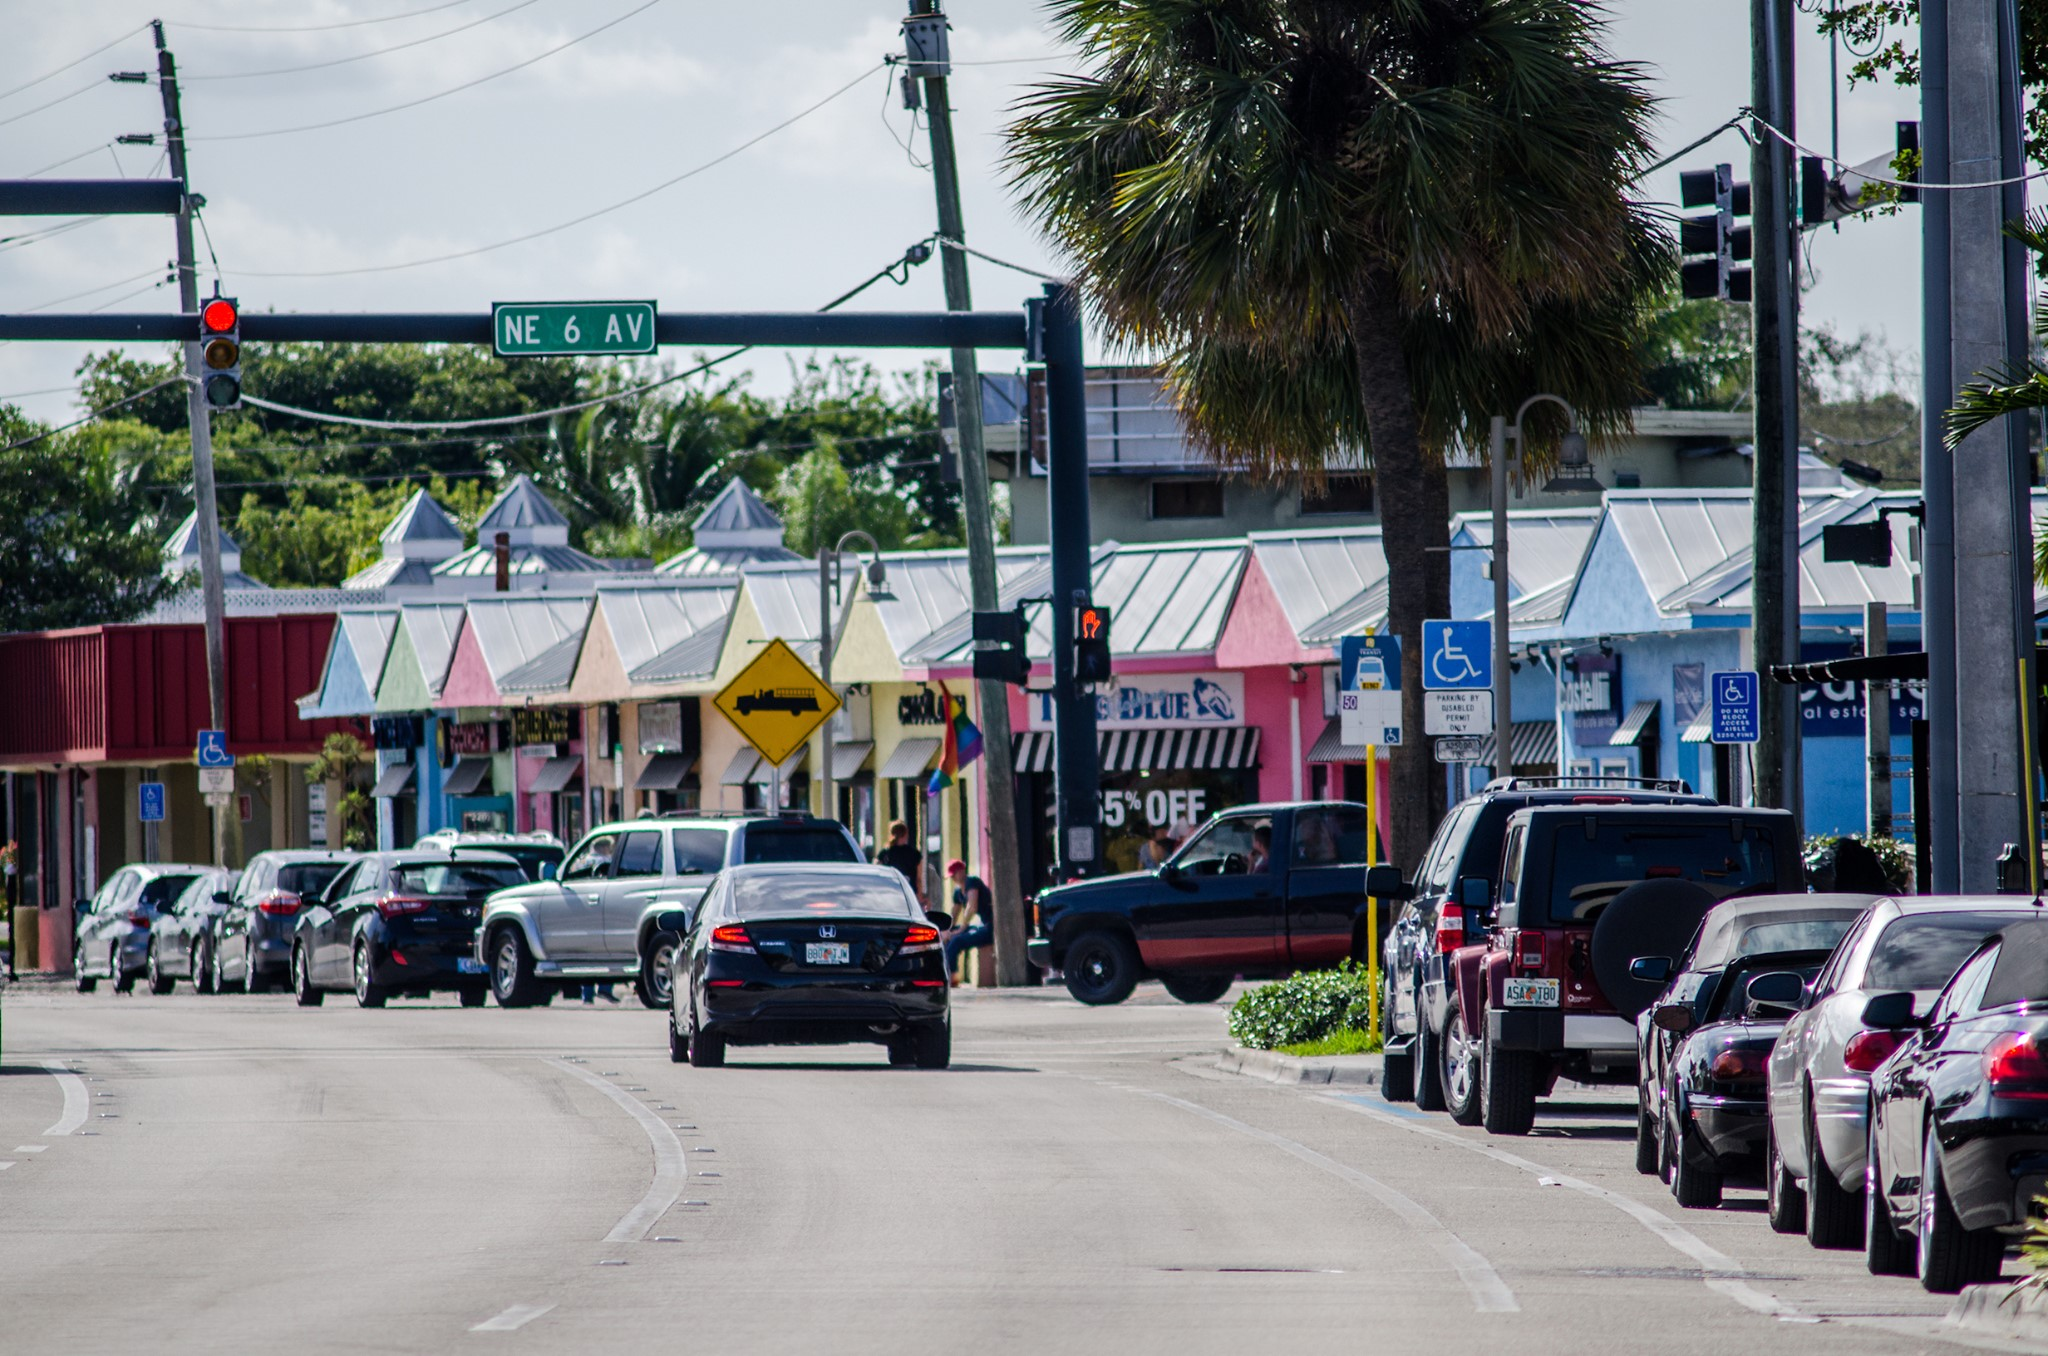 23 Cases of Coronavirus in Wilton Manors So Far